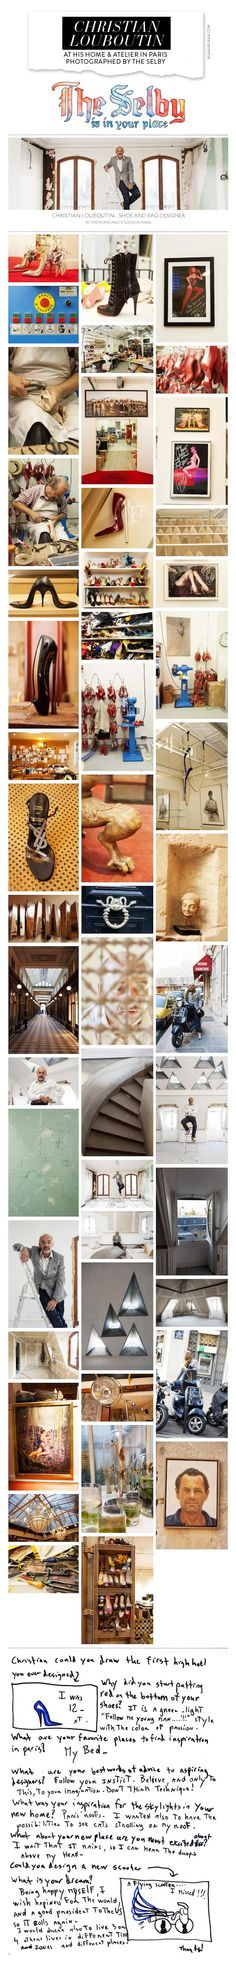 louis louboutin shoes - 1000+ images about Christian louboutin on Pinterest | Christian ...